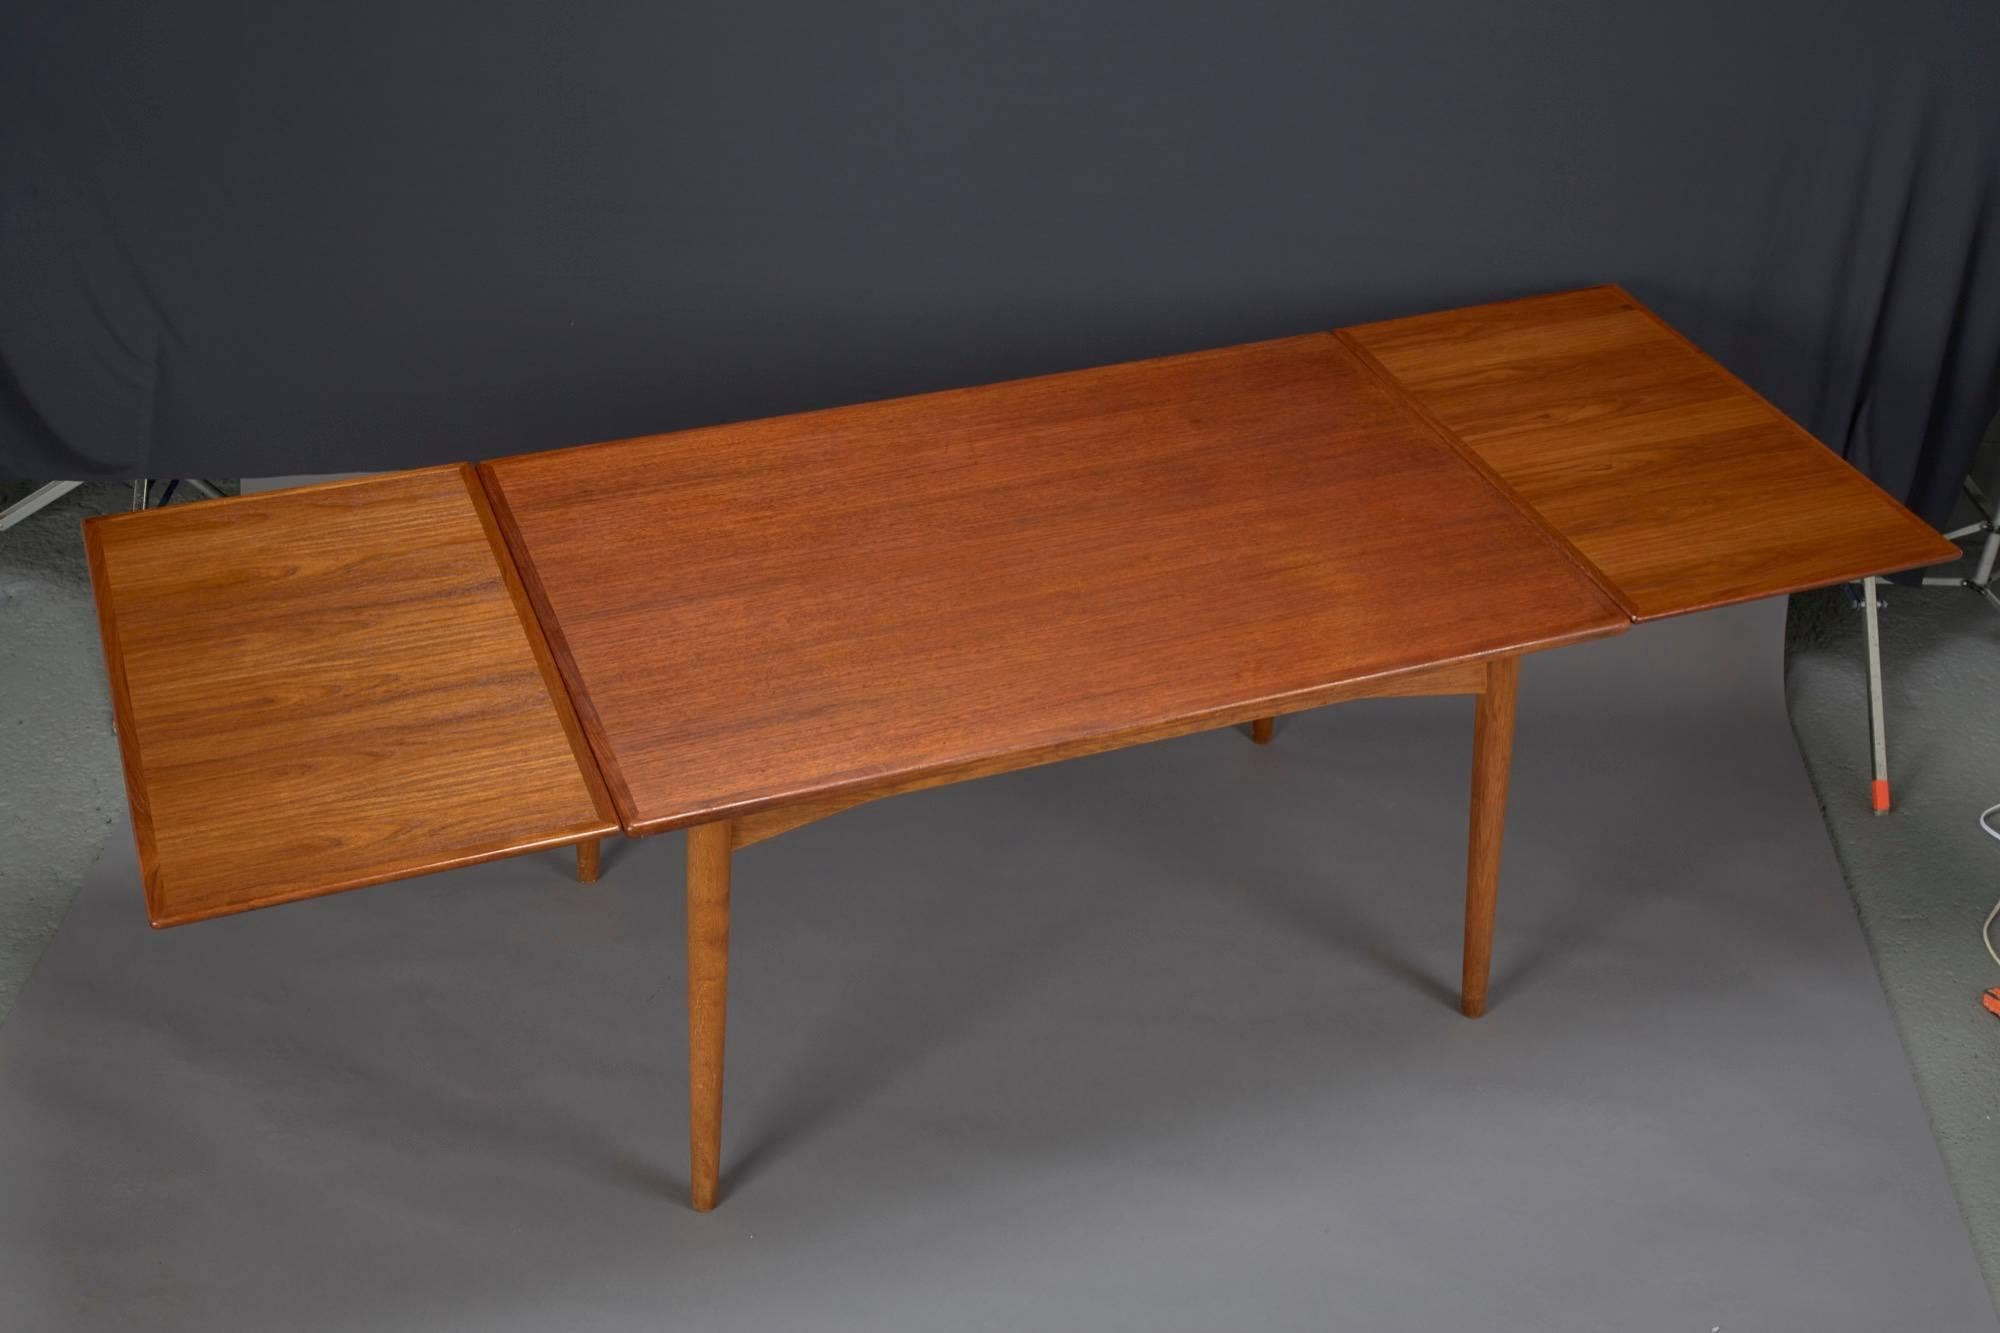 Danish Modern Teak Dining Table With Two Pull Out Leaves By Omann Jun At 1stdibs